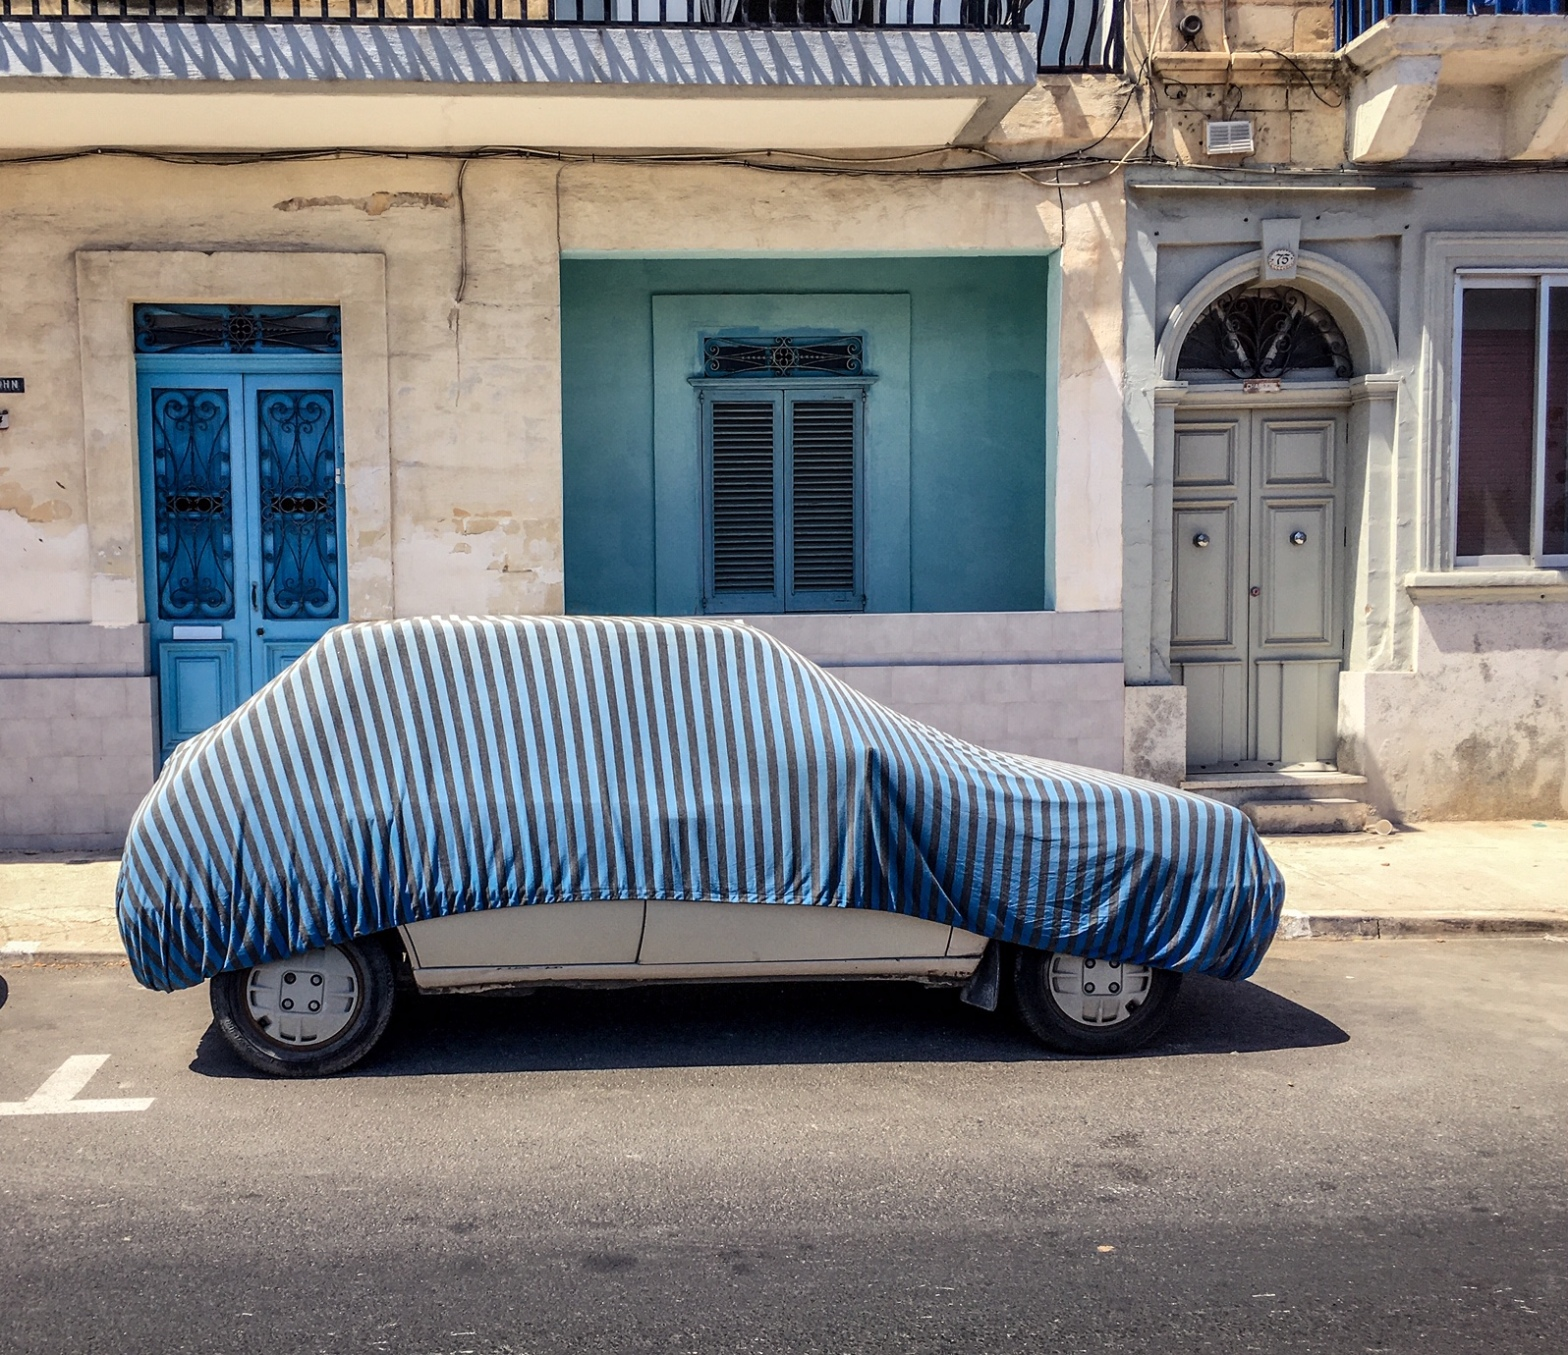 A car with blue striped cover, against blue house and doors, Malta. Image © Helen Jones-Florio